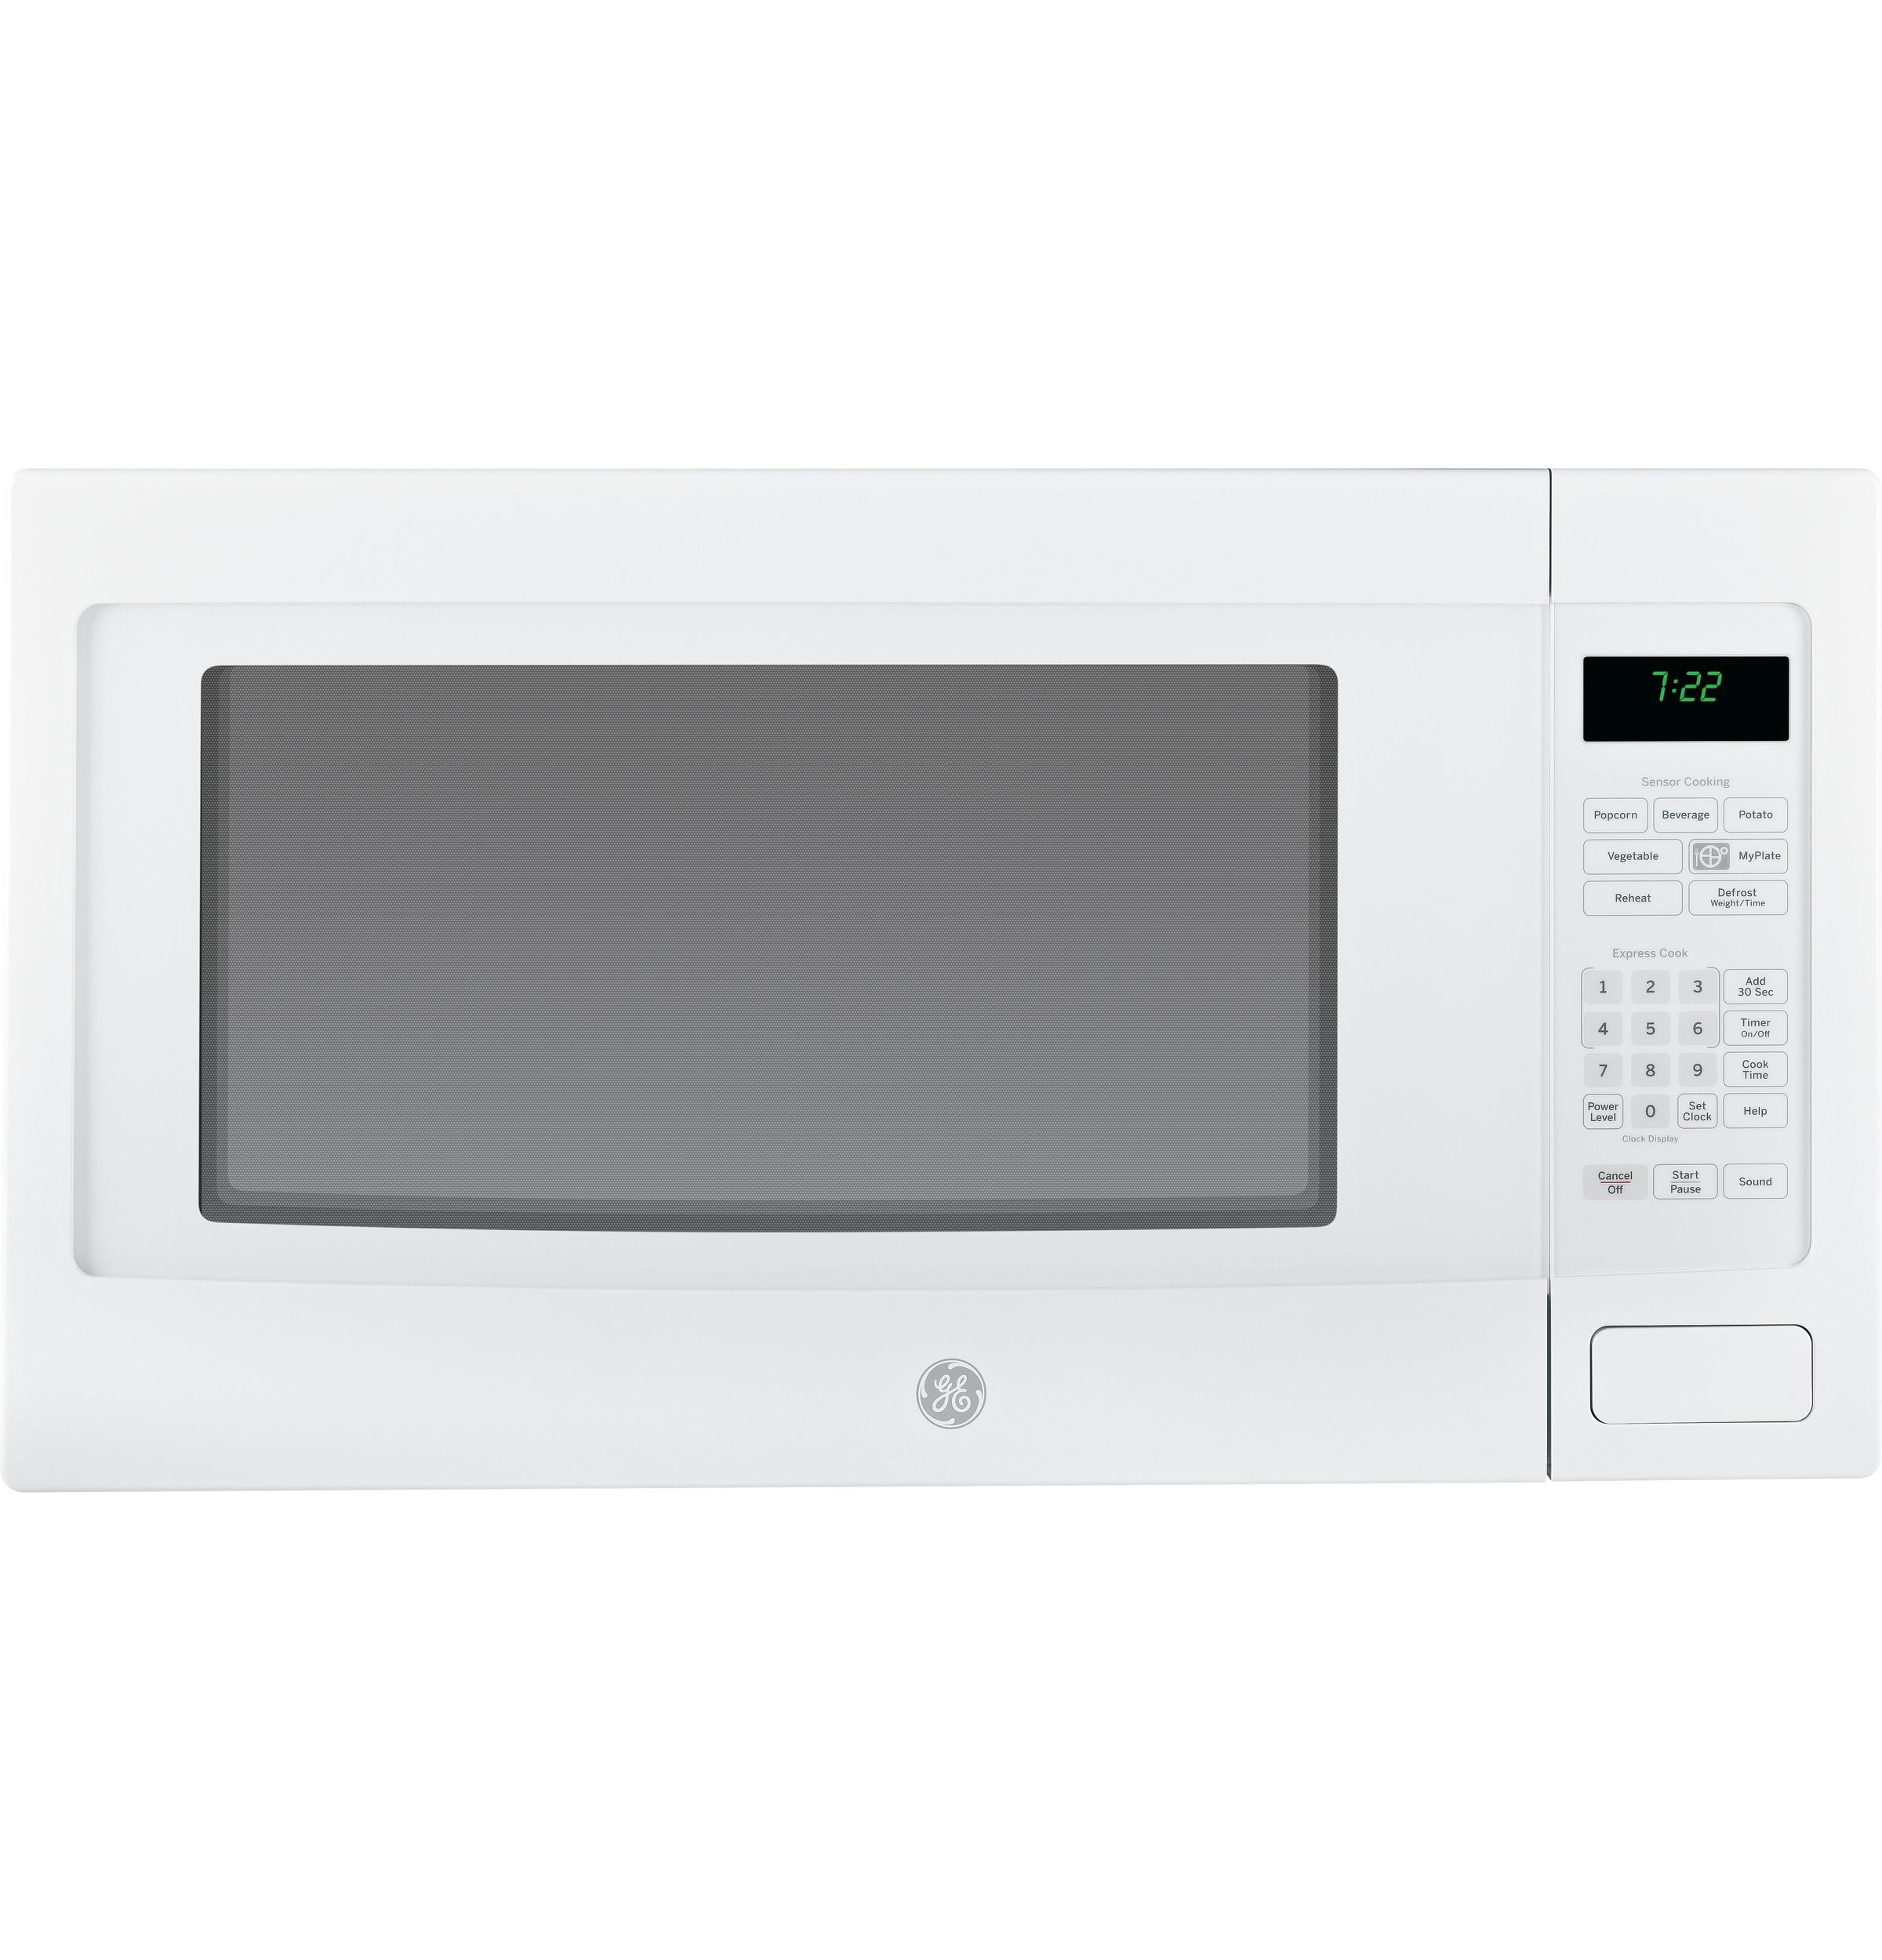 ... Cu. Ft. Countertop Microwave Oven PEB7226DFWW GE Appliances